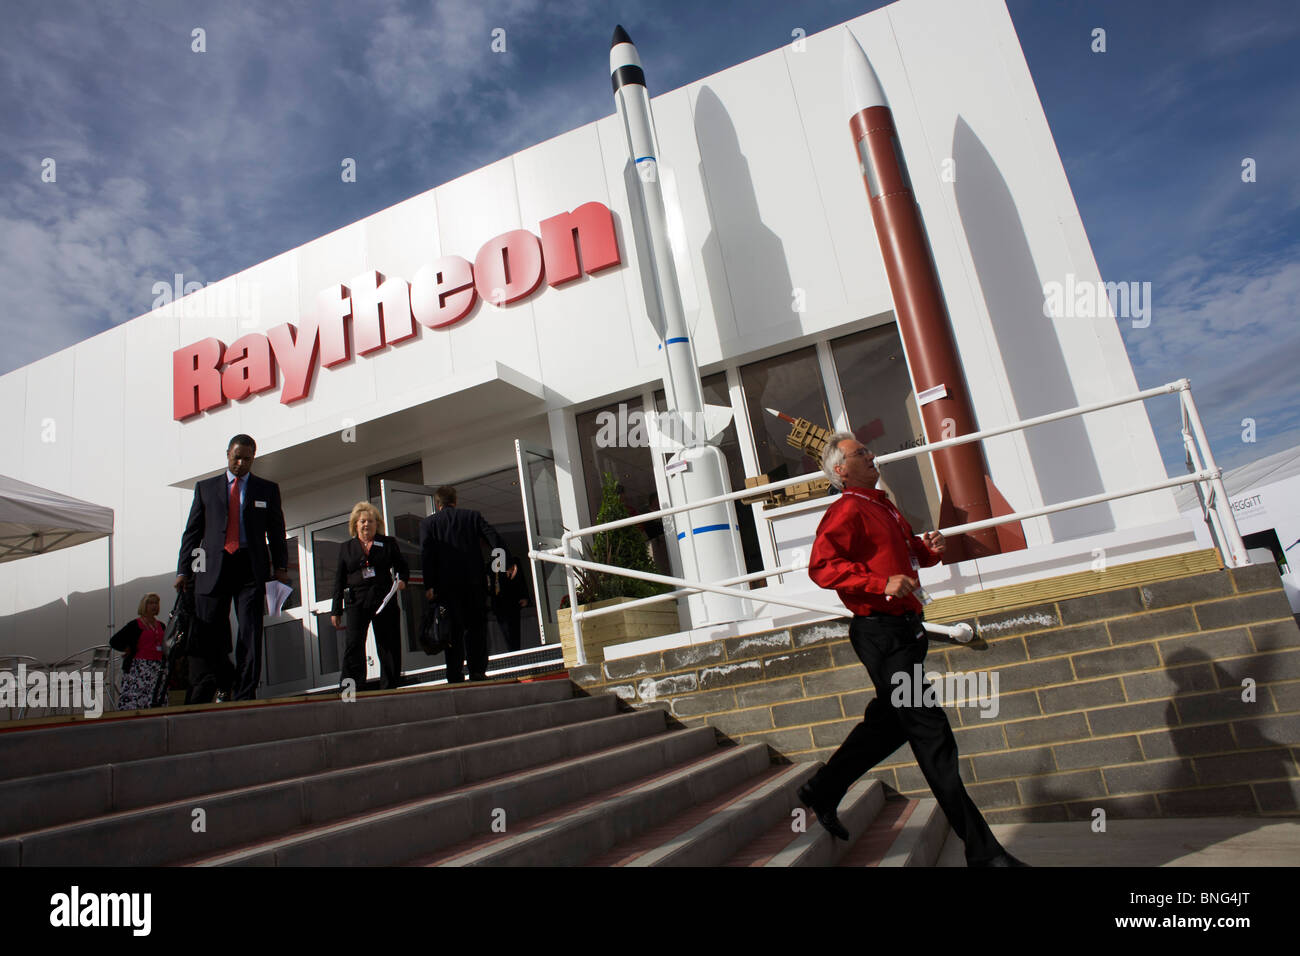 US Aerospace manufacturer Raytheon's hospitality chalet at the Farnborough Airshow. - Stock Image